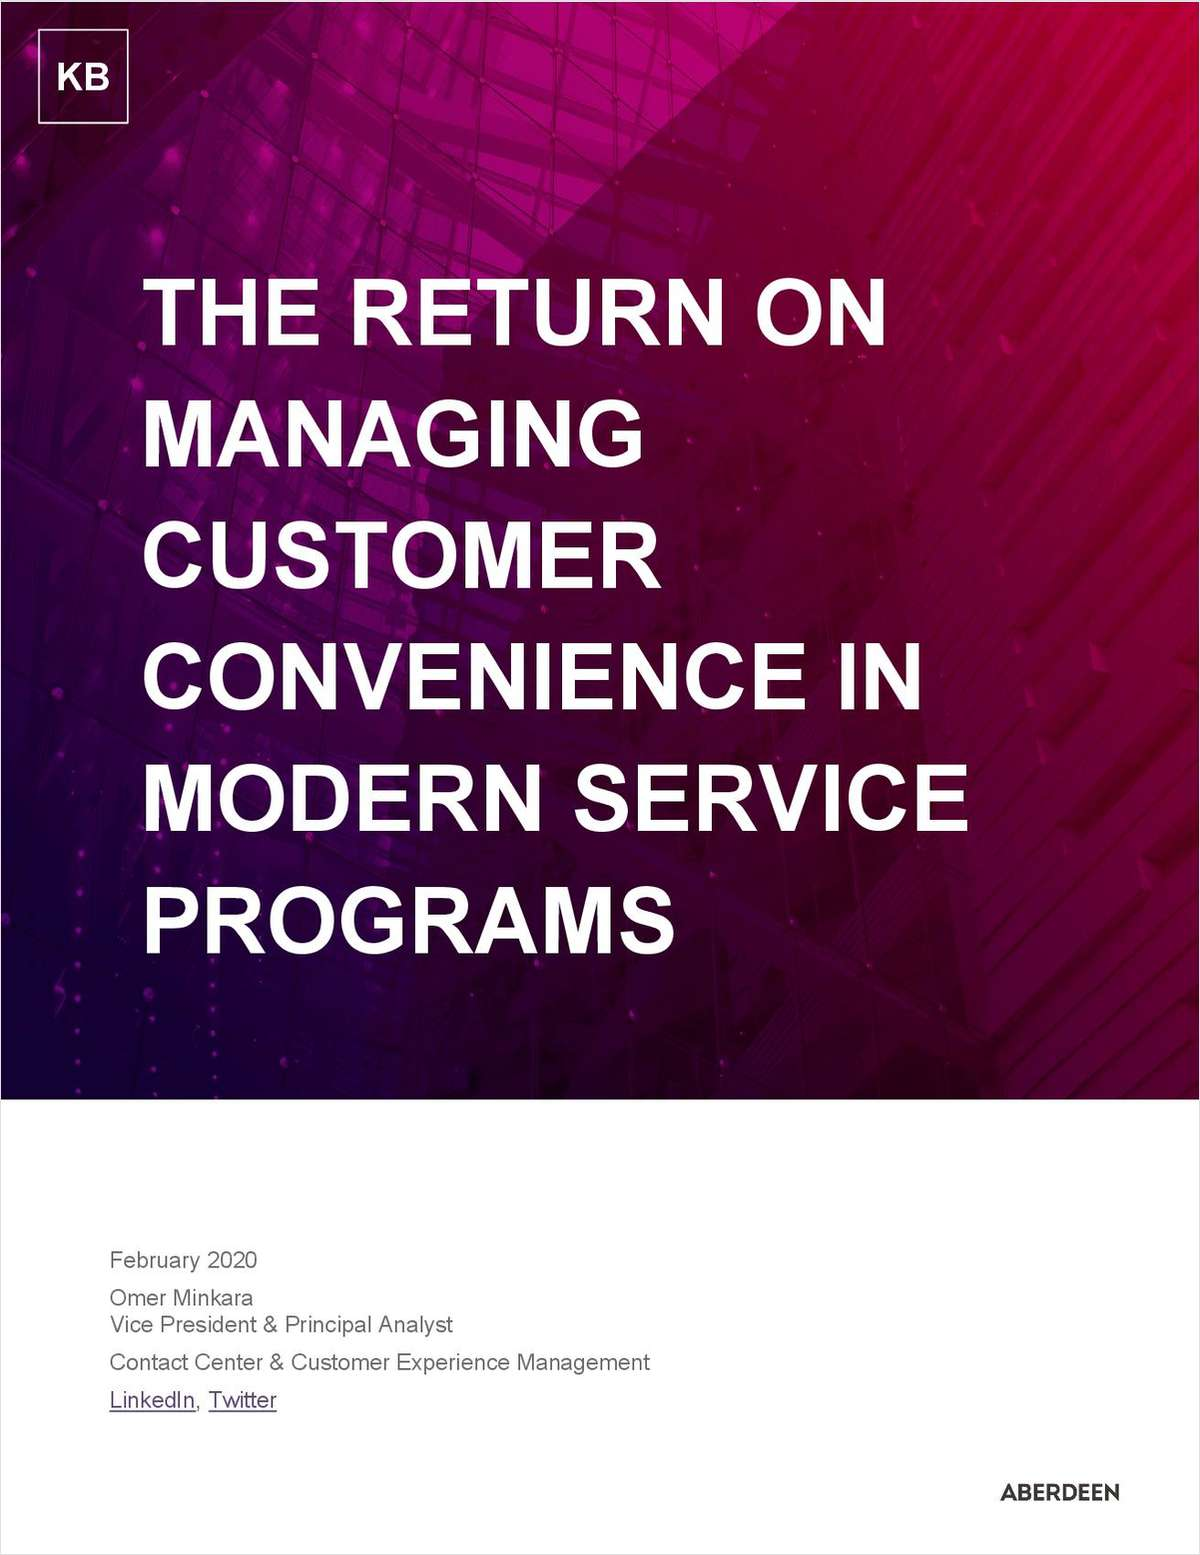 Aberdeen Report: The Return on Managing Customer Convenience in Modern Service Programs